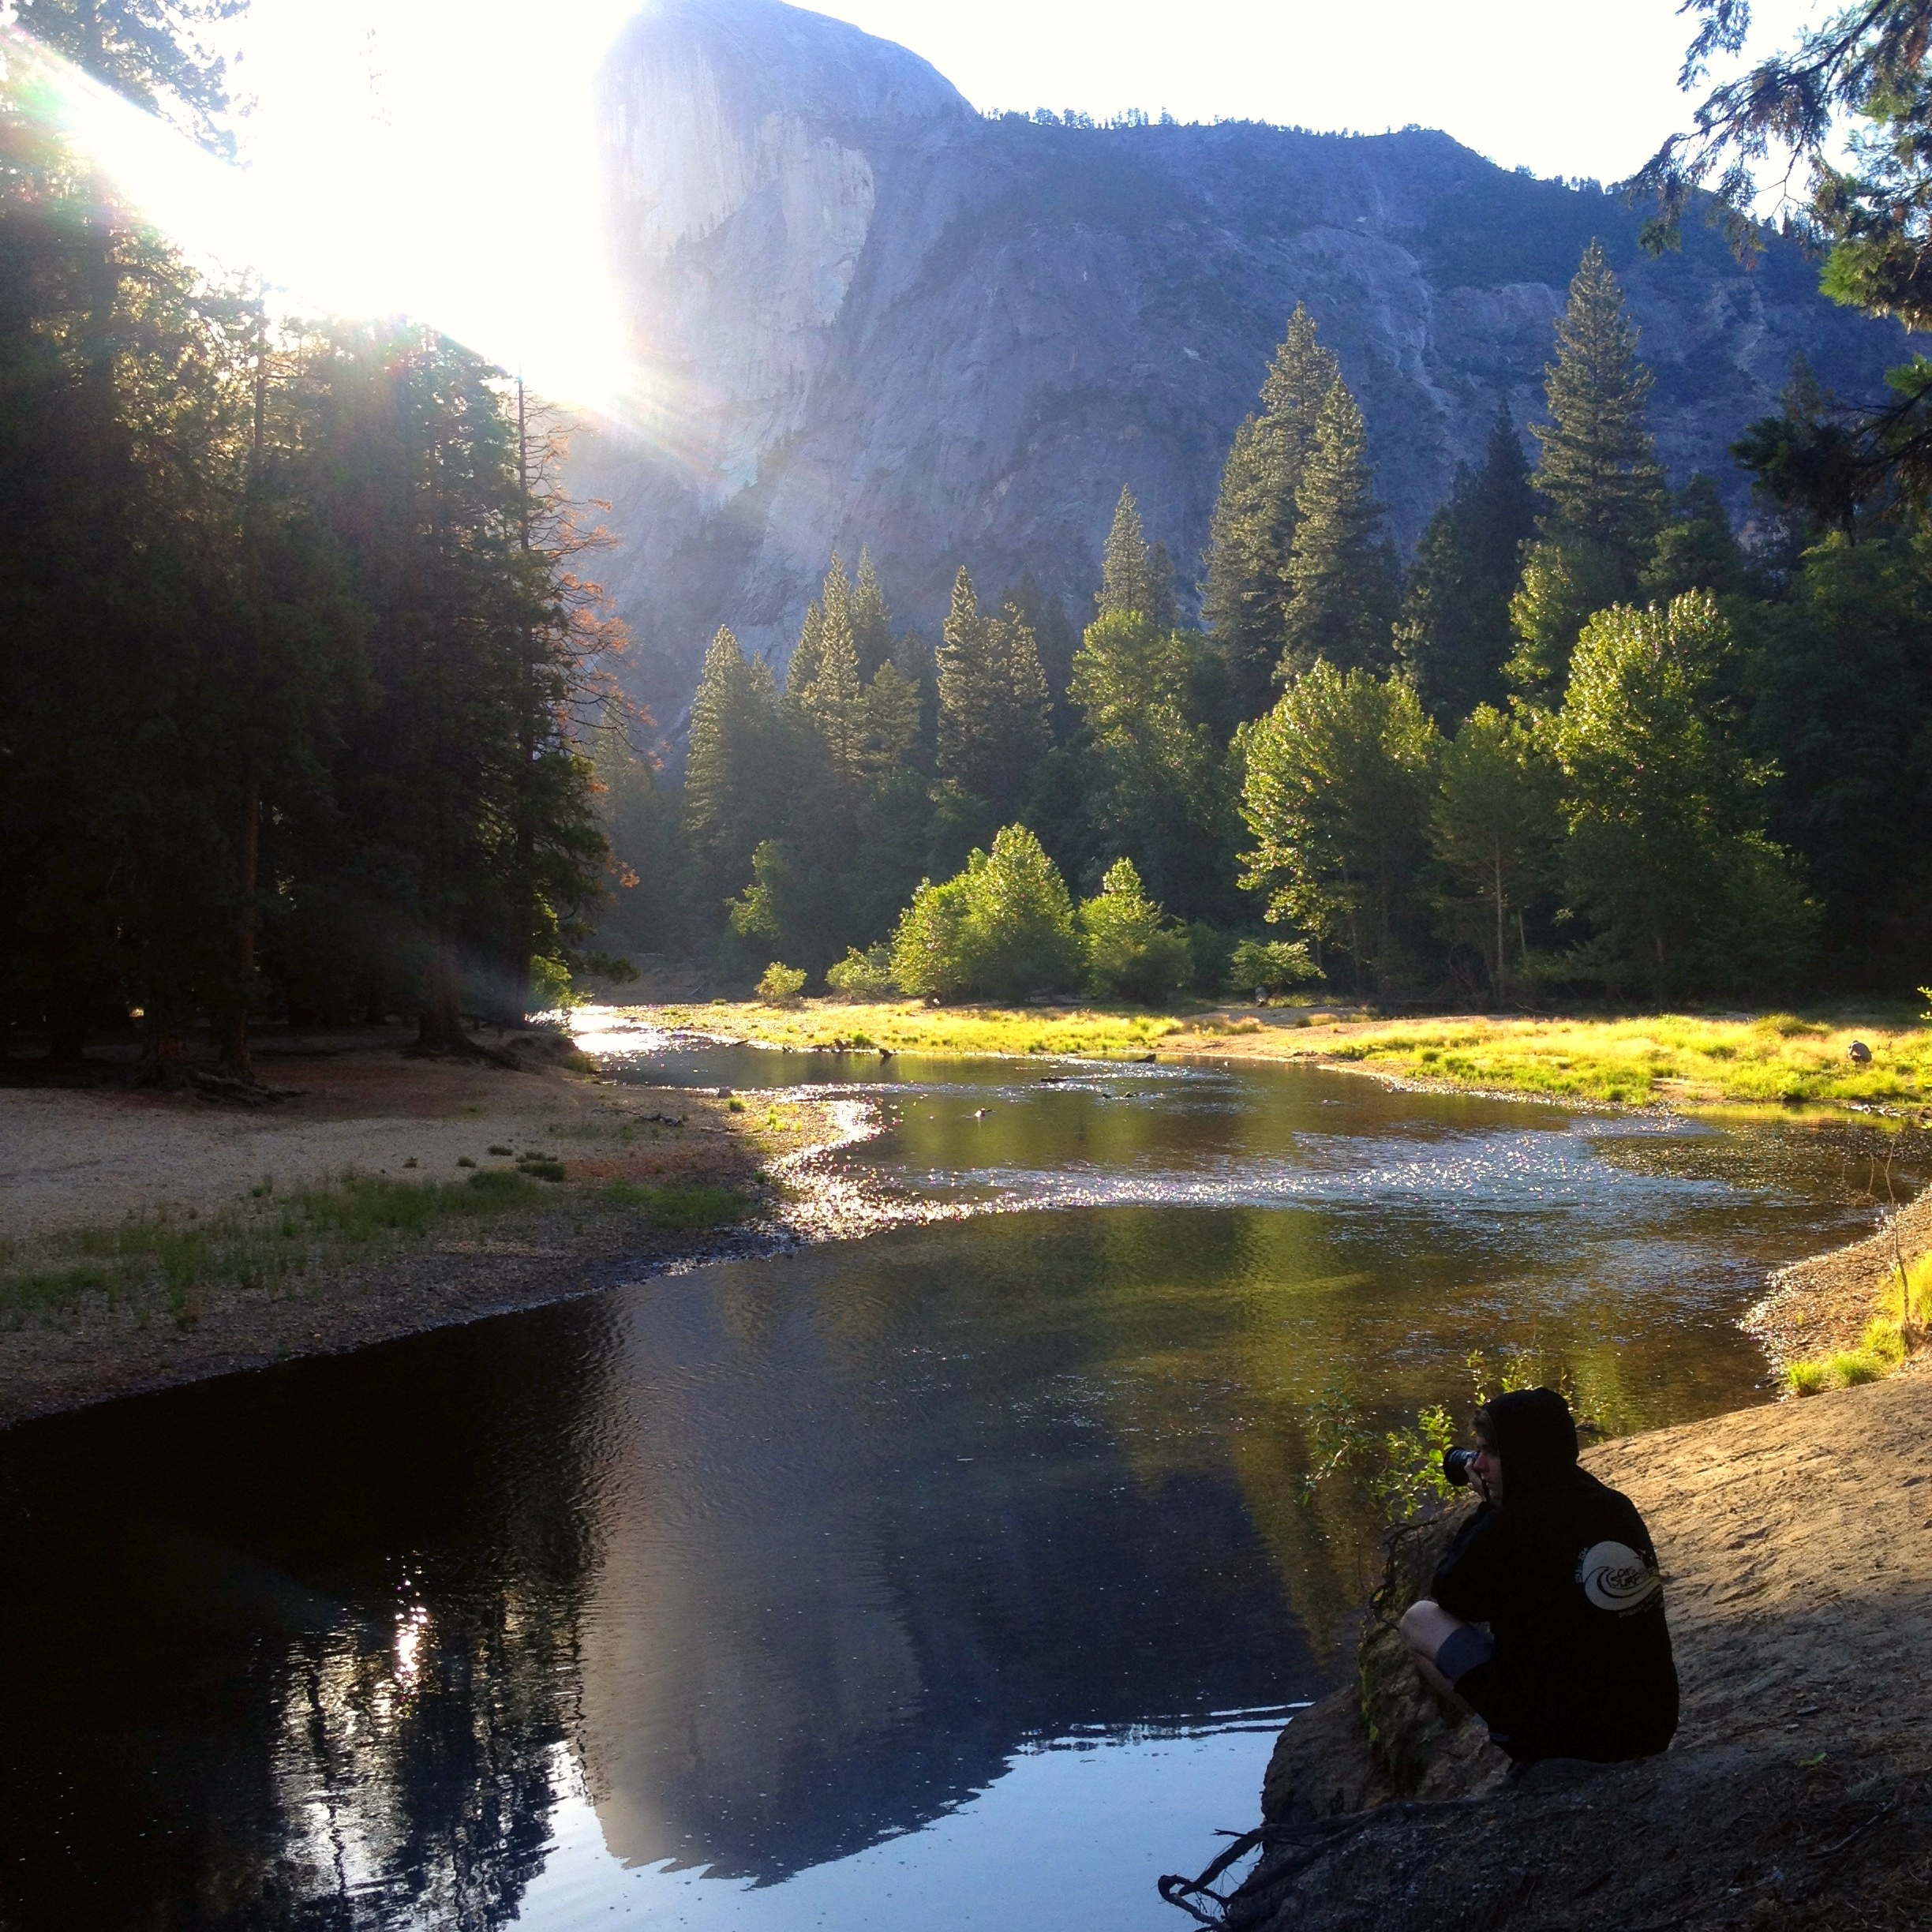 Yosemite in the morning with your sons doing what makes them feel alive. So good!